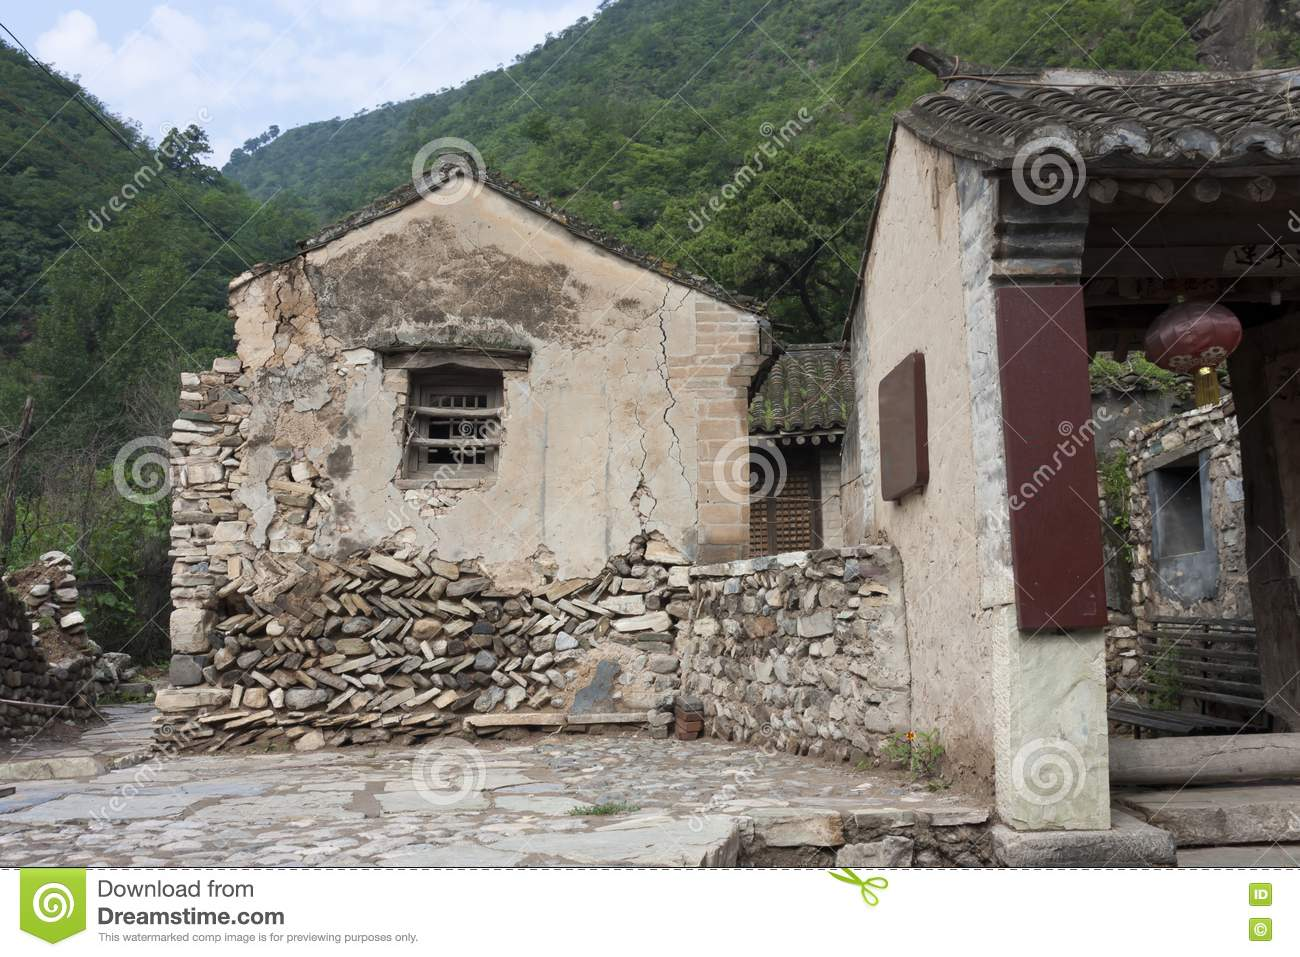 The Old Brick House Of The Ancient Village Stock Image